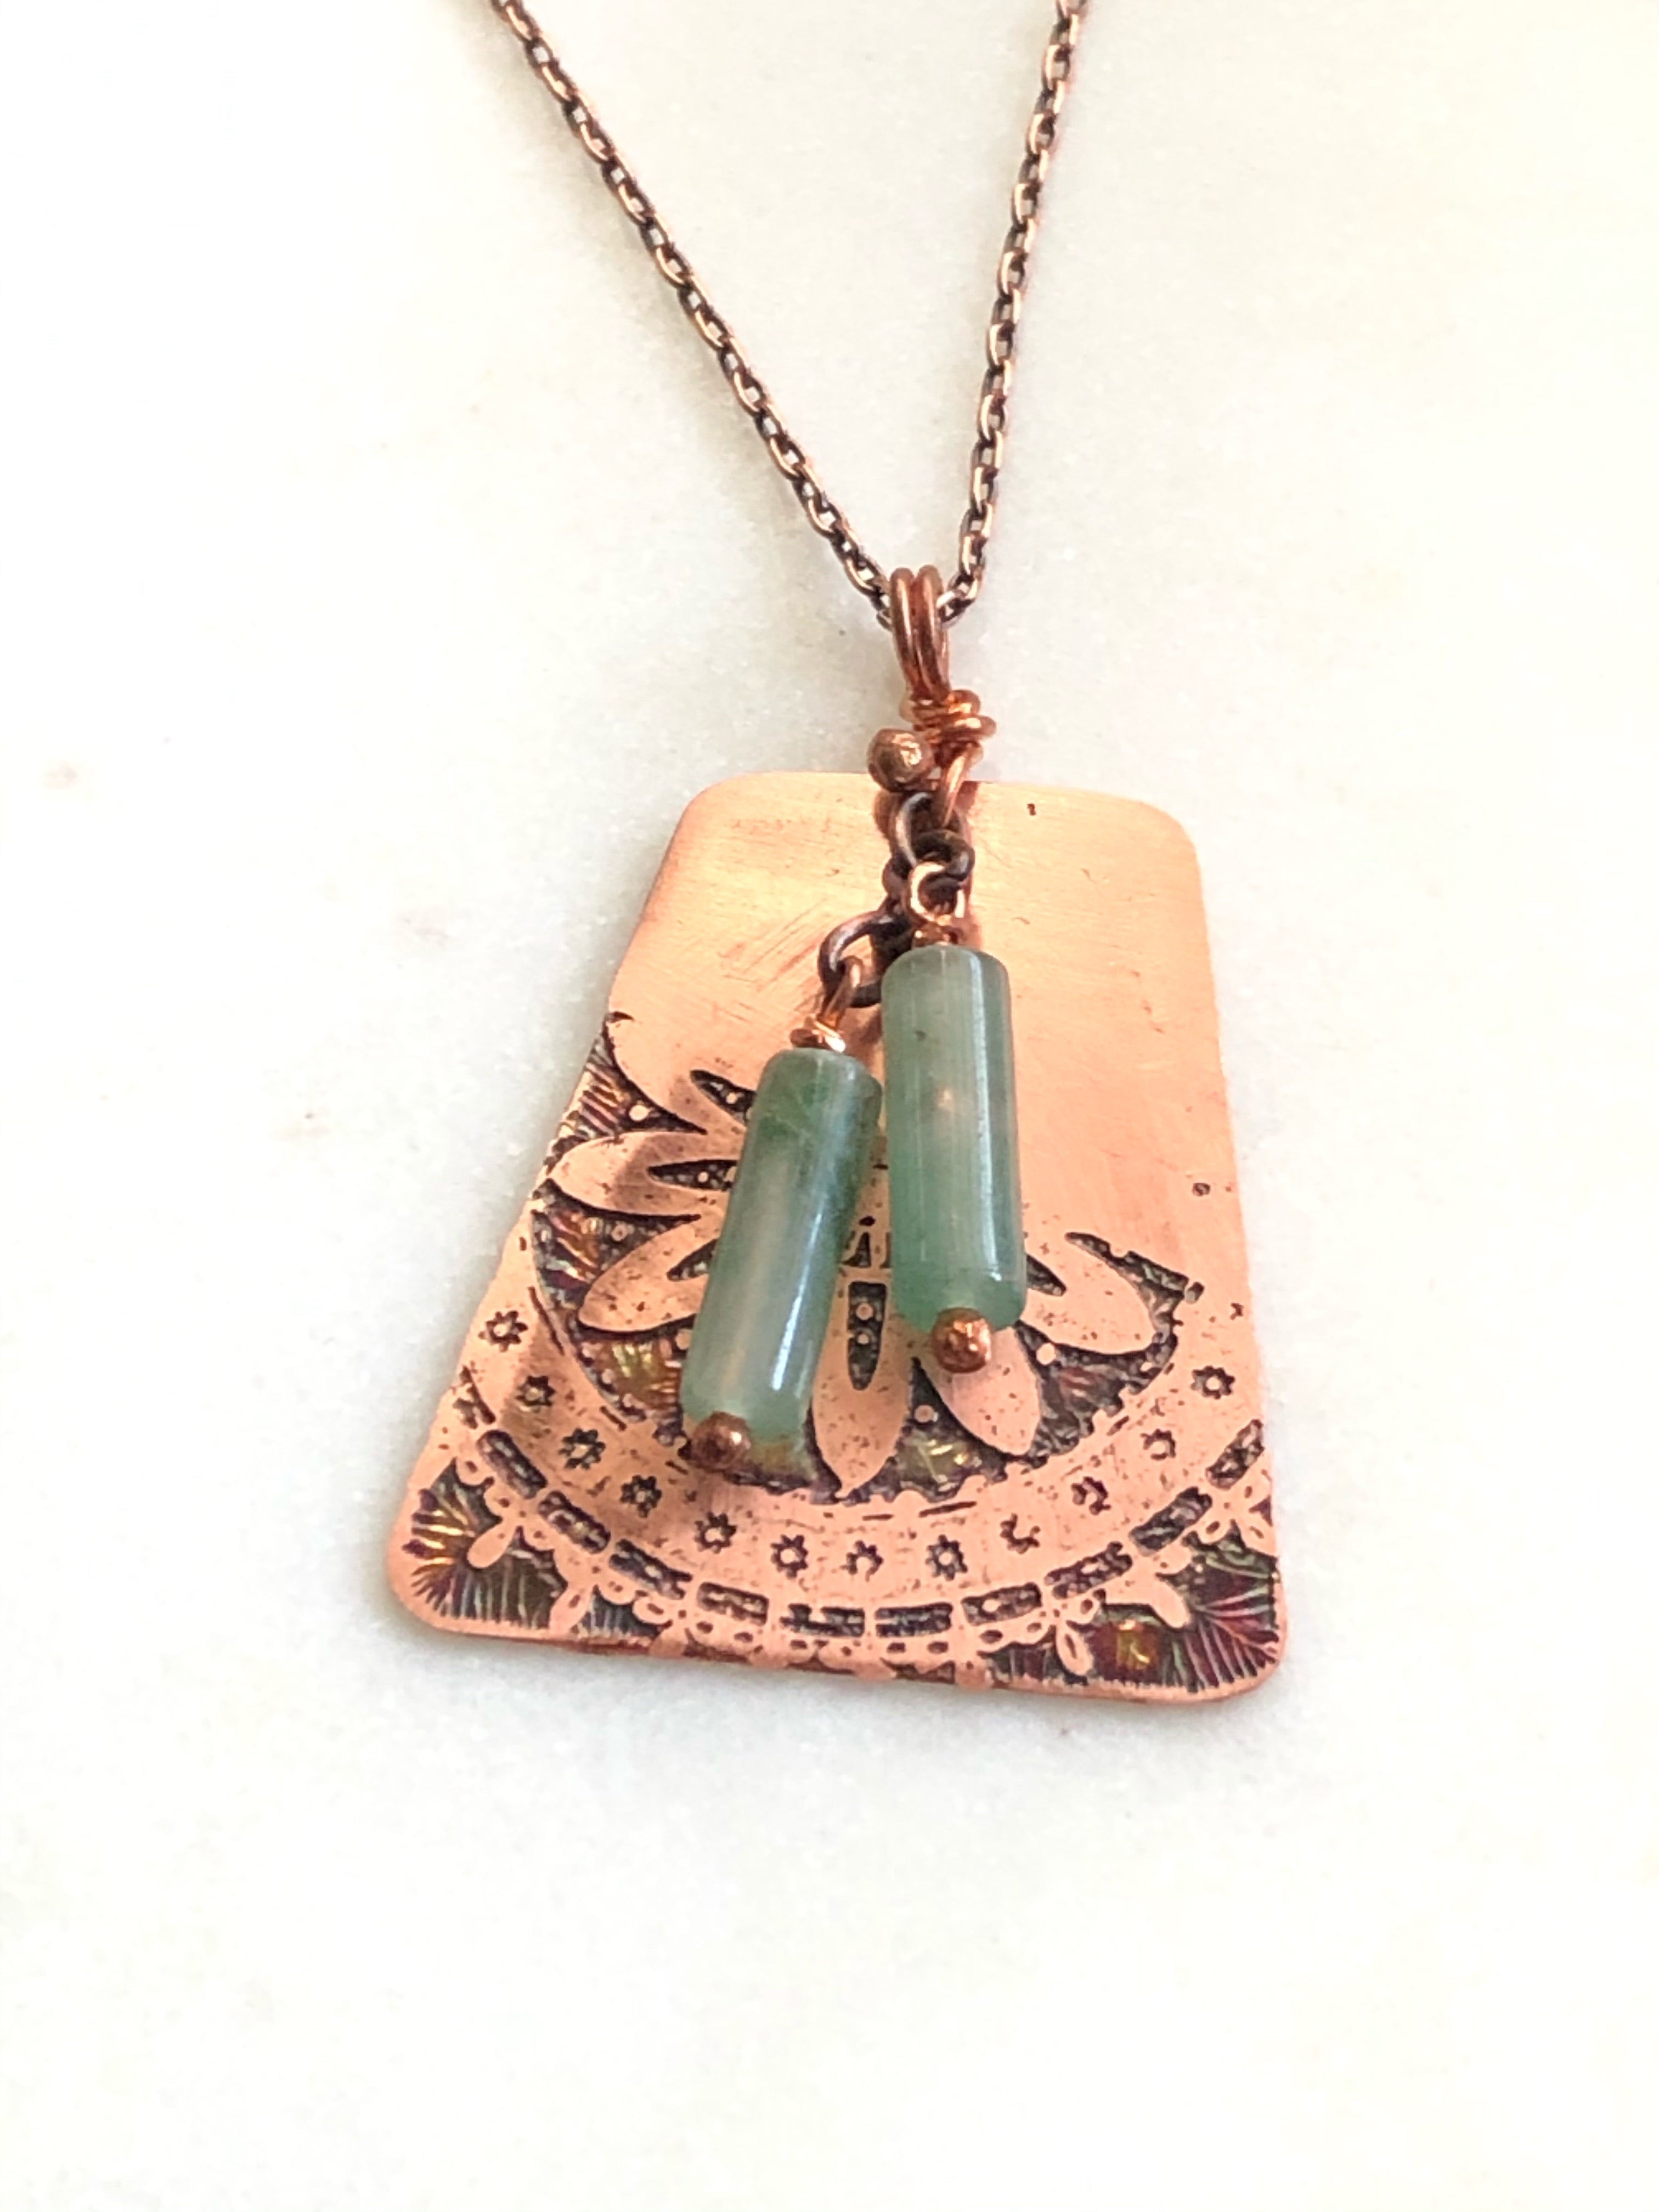 Acid etched copper mandala necklace with aventurine